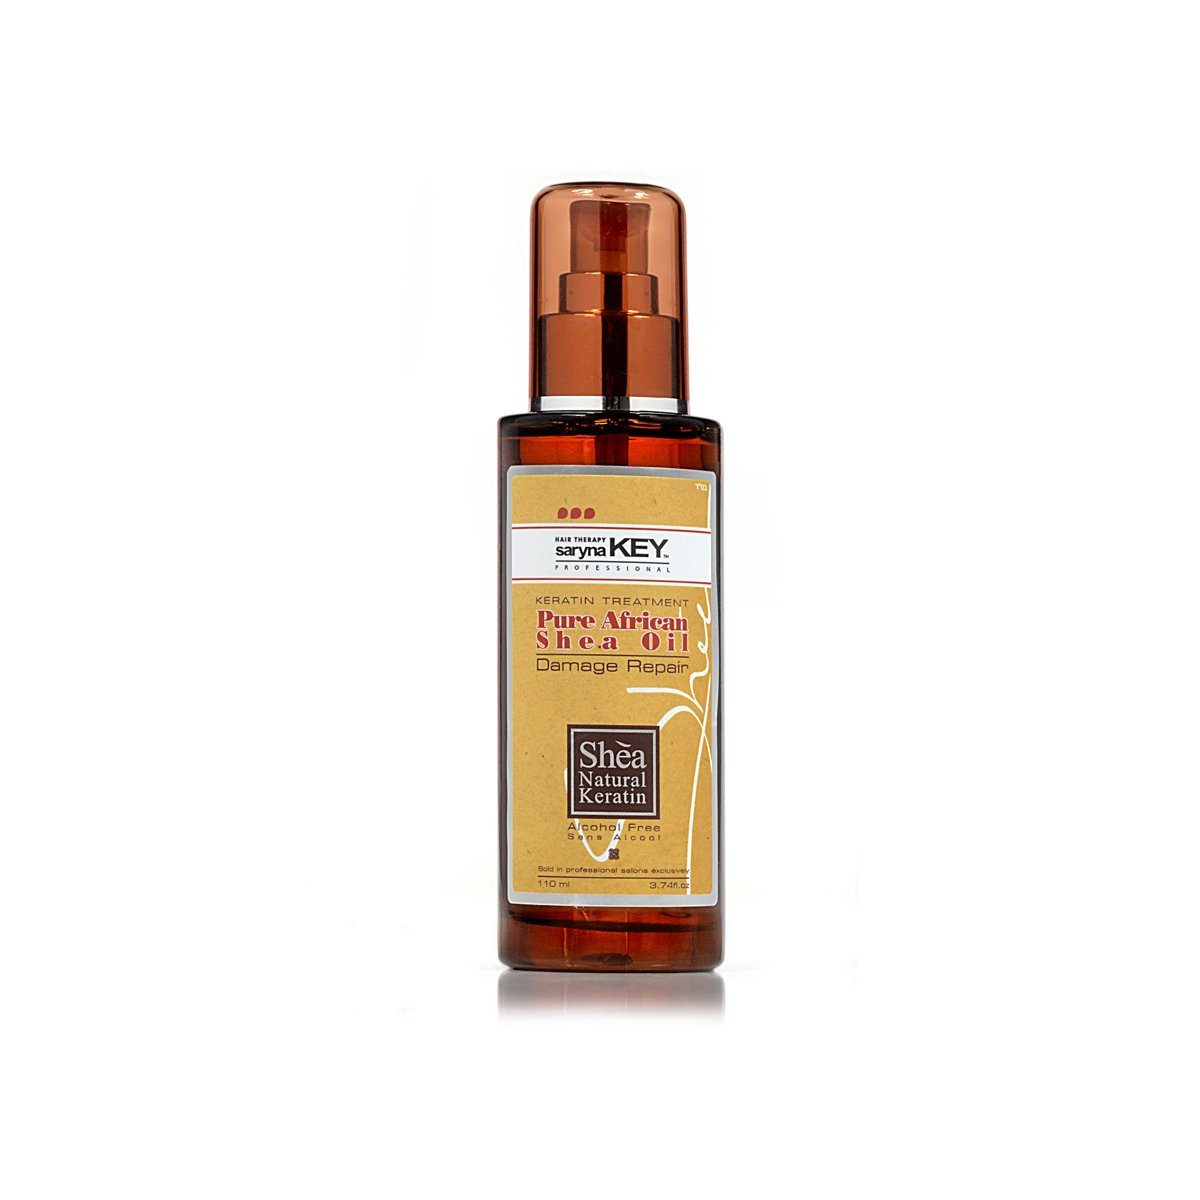 Saryna Key Damage Repair Conditioner, Pure African Shea Oil, 3.74 Ounce